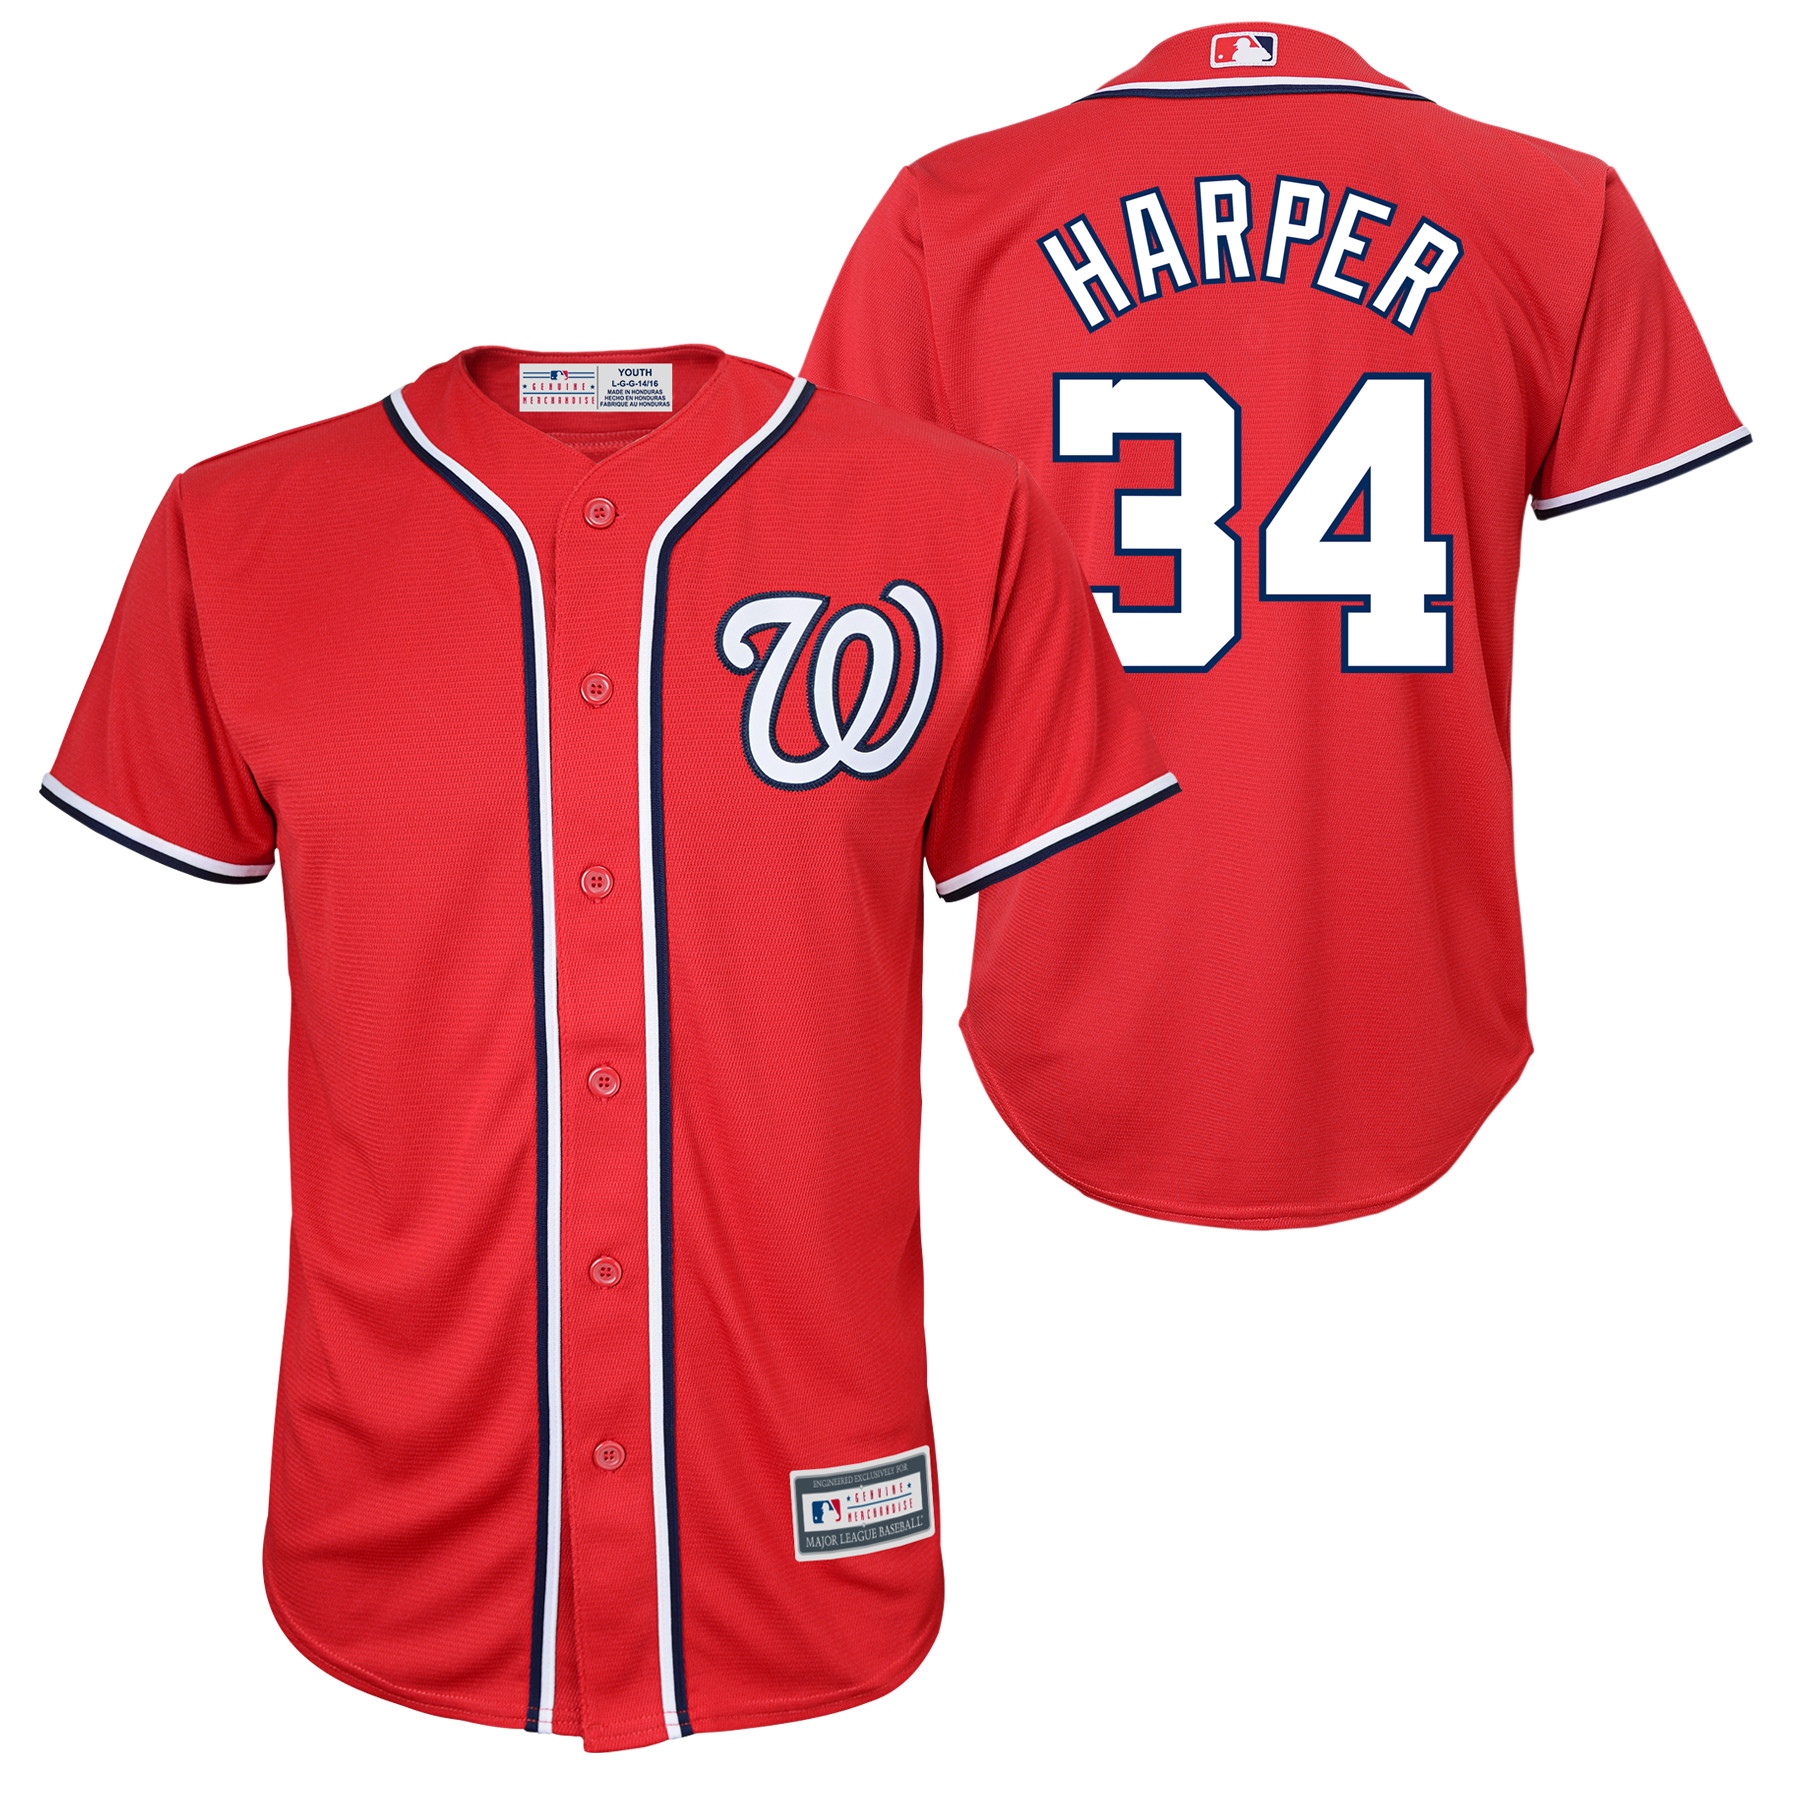 Bryce Harper Washington Nationals Youth Player Replica Jersey - Red